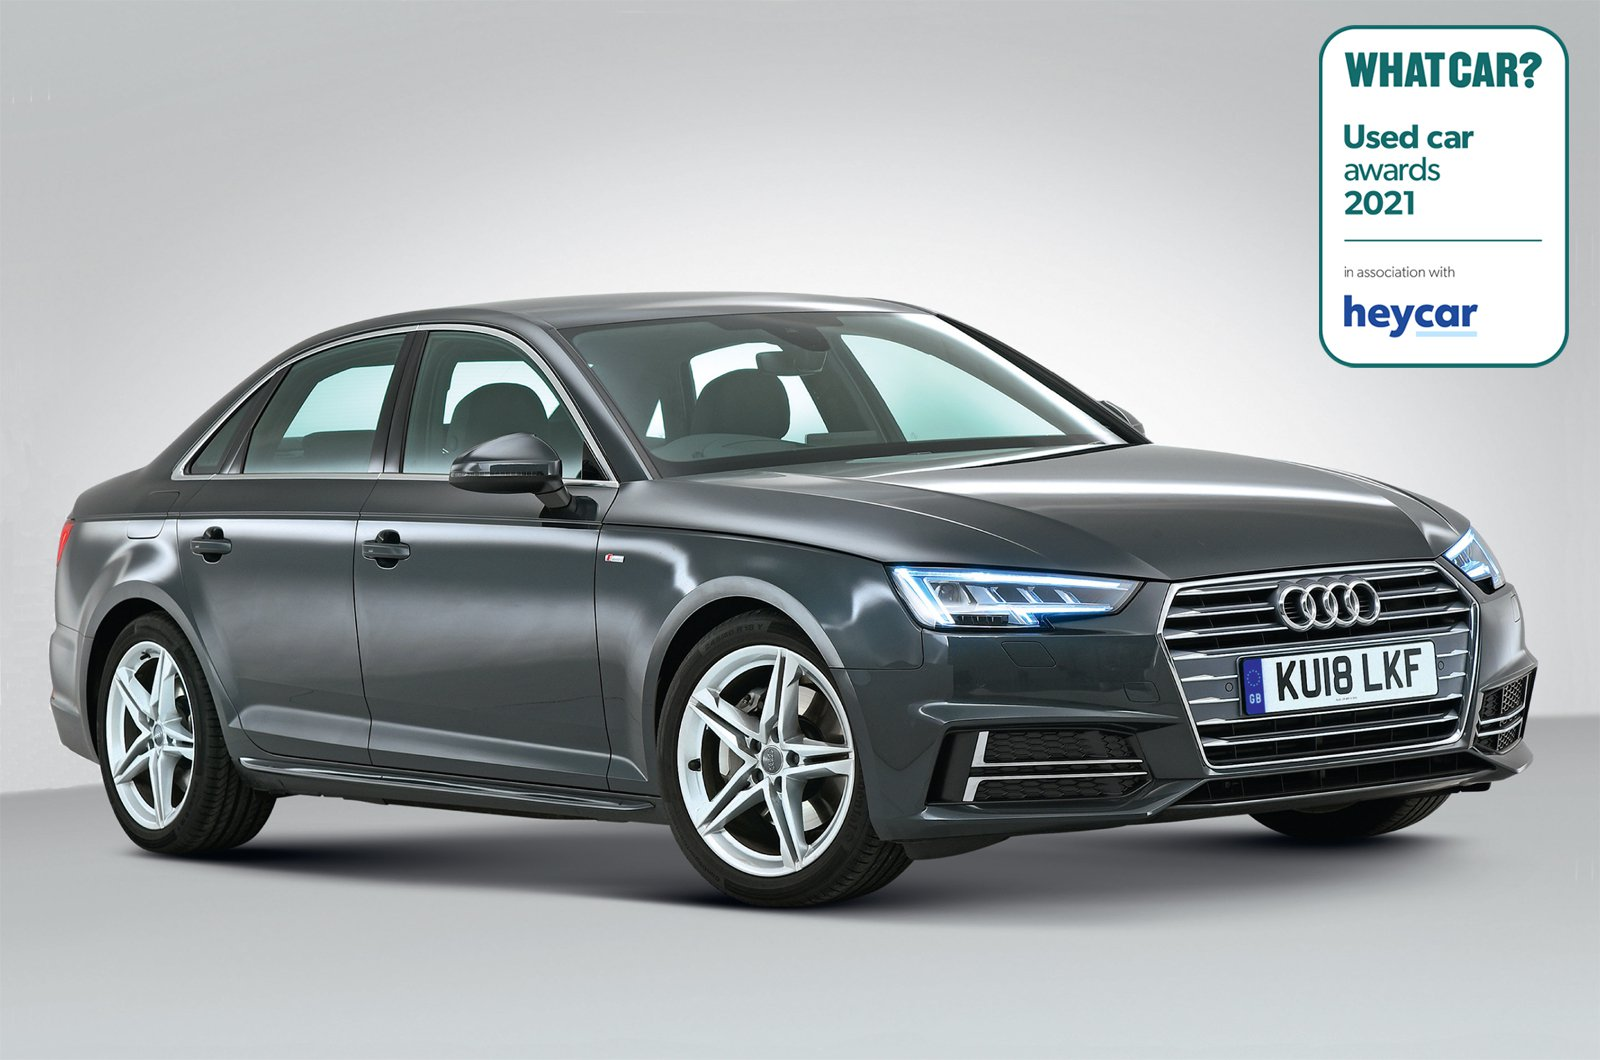 Used Car Awards 2021 - Audi A4